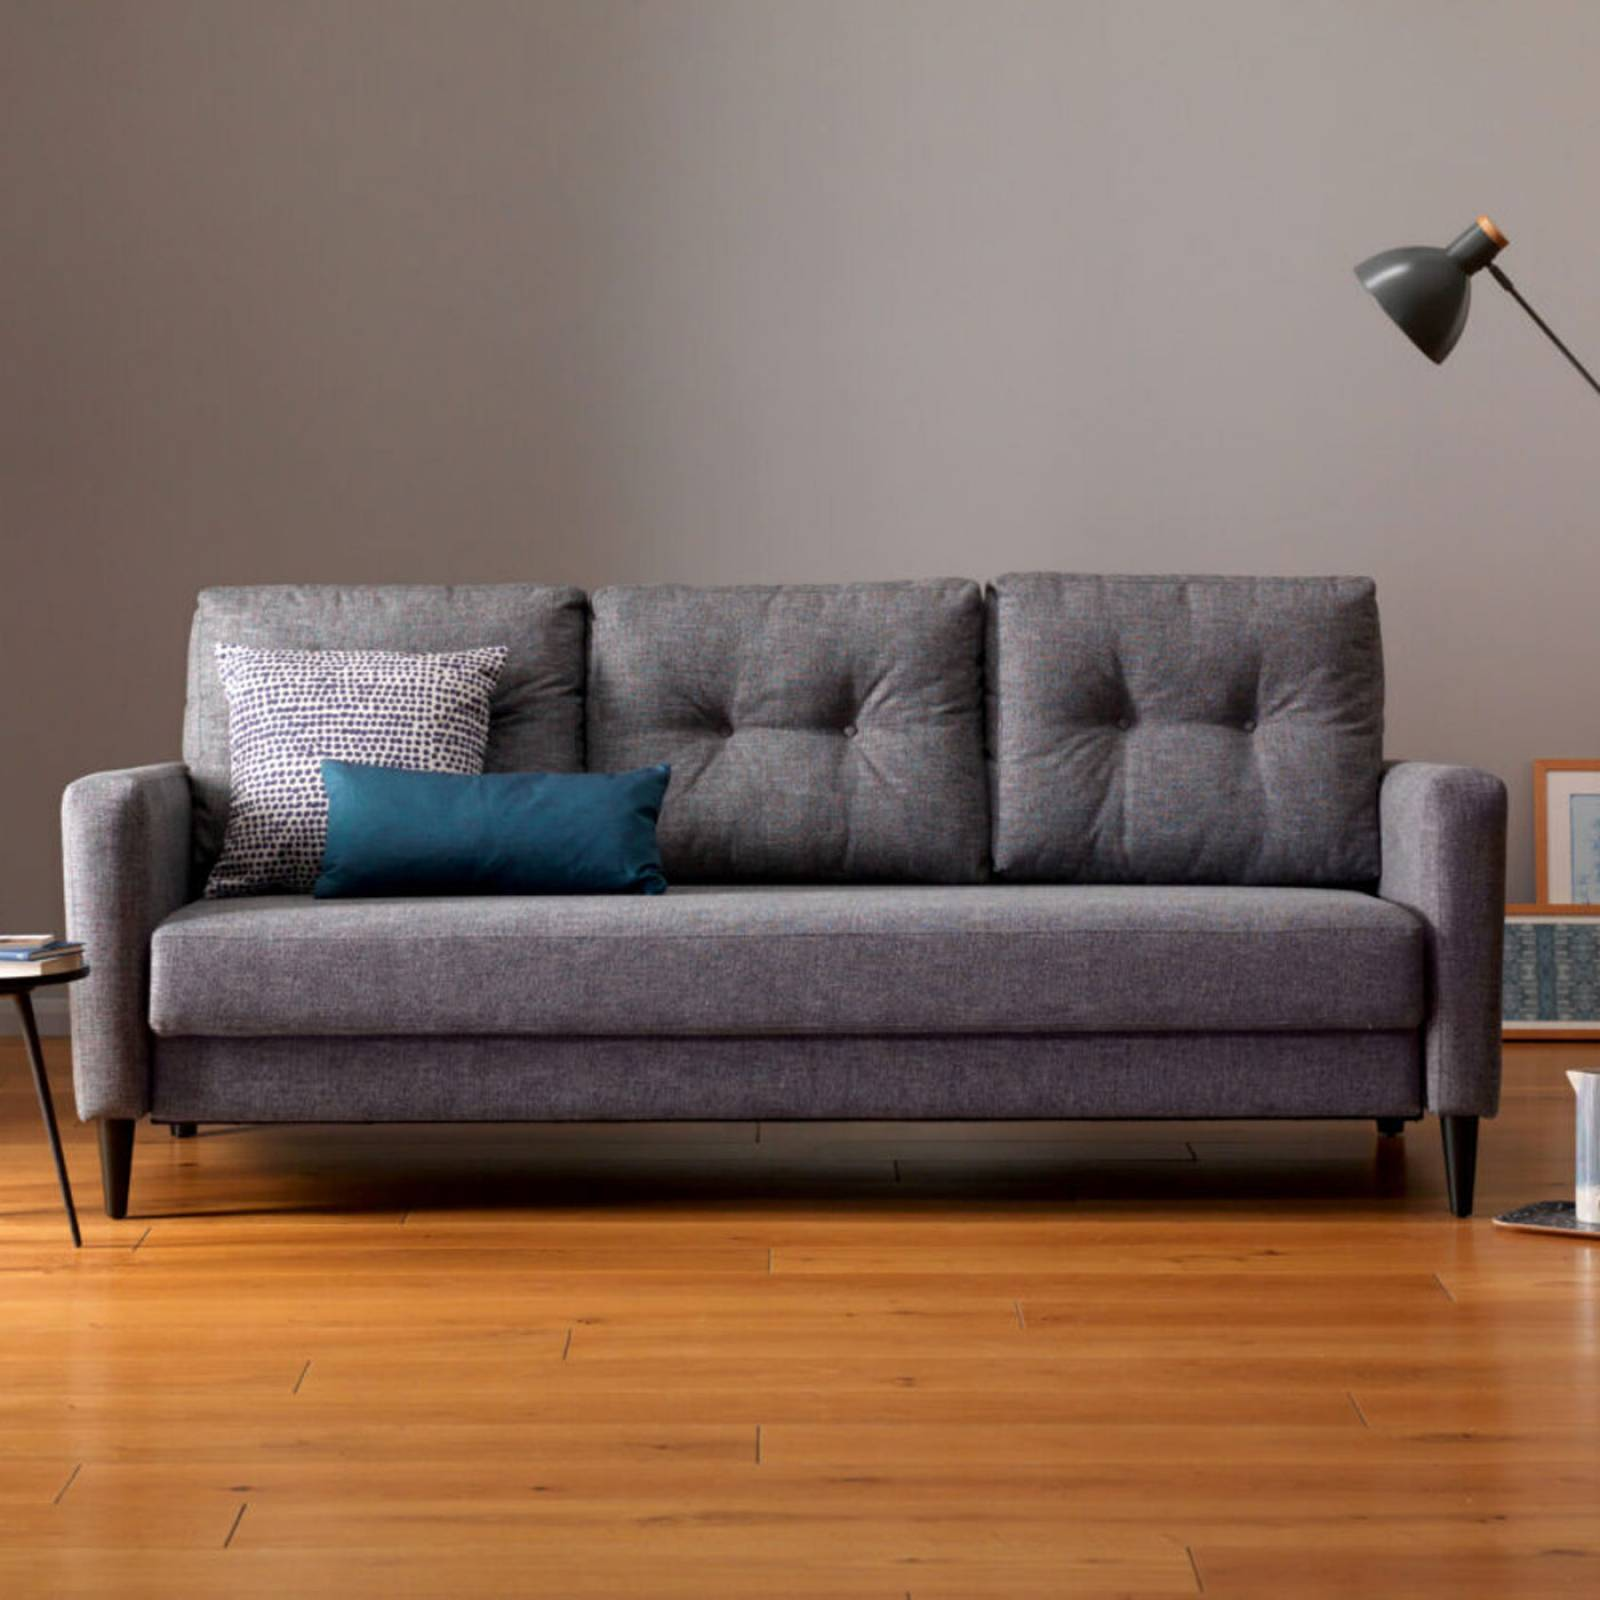 G Plan Vintage The Fifty Four Sofa Bed thumbnails